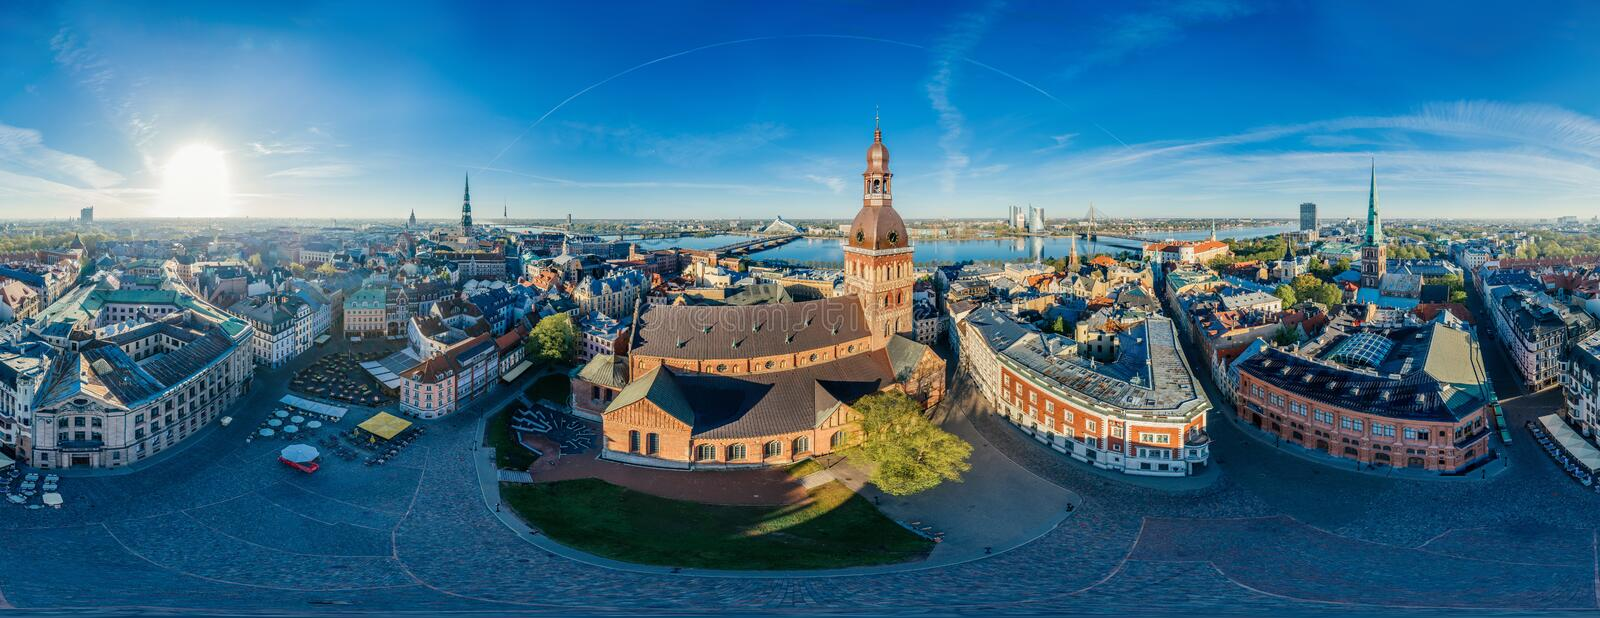 Riga City Dome church Old Town Monument drone 360 vr view. Riga city Drone photo from above Old Town Dome church, VR camera Sphere planet, virtual reality stock photos